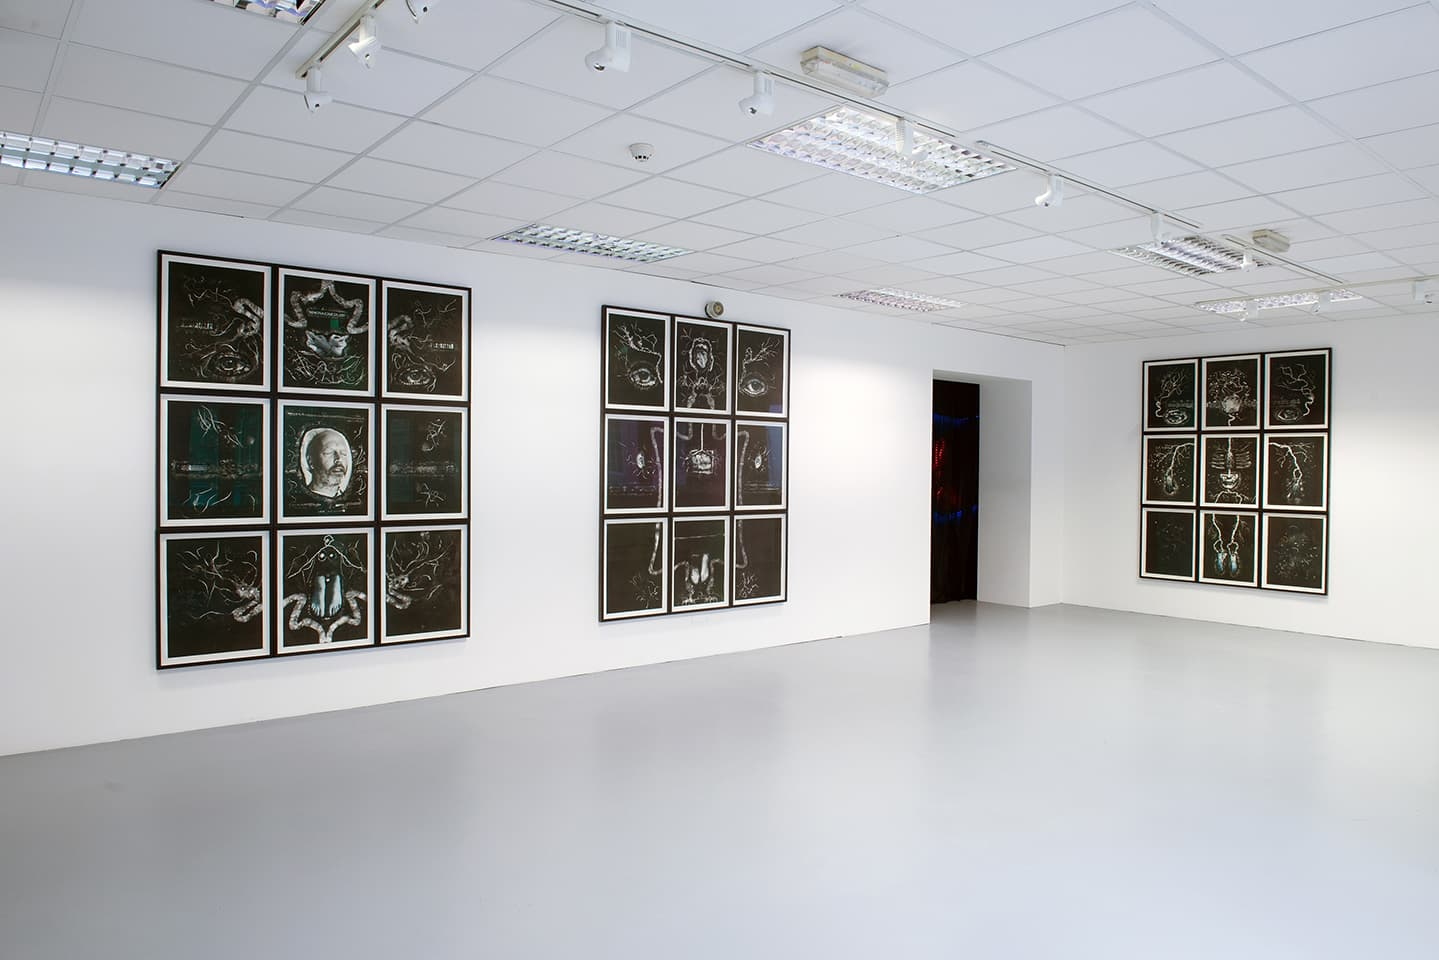 <strong>The Portrait Anatomised</strong>, Max (left), Fiona (centre) and Elisabeth (right), monotypes, Susan Aldworth, 2.5 x 2 metres each, 2013. Photograph by Colin Davison at Vane.